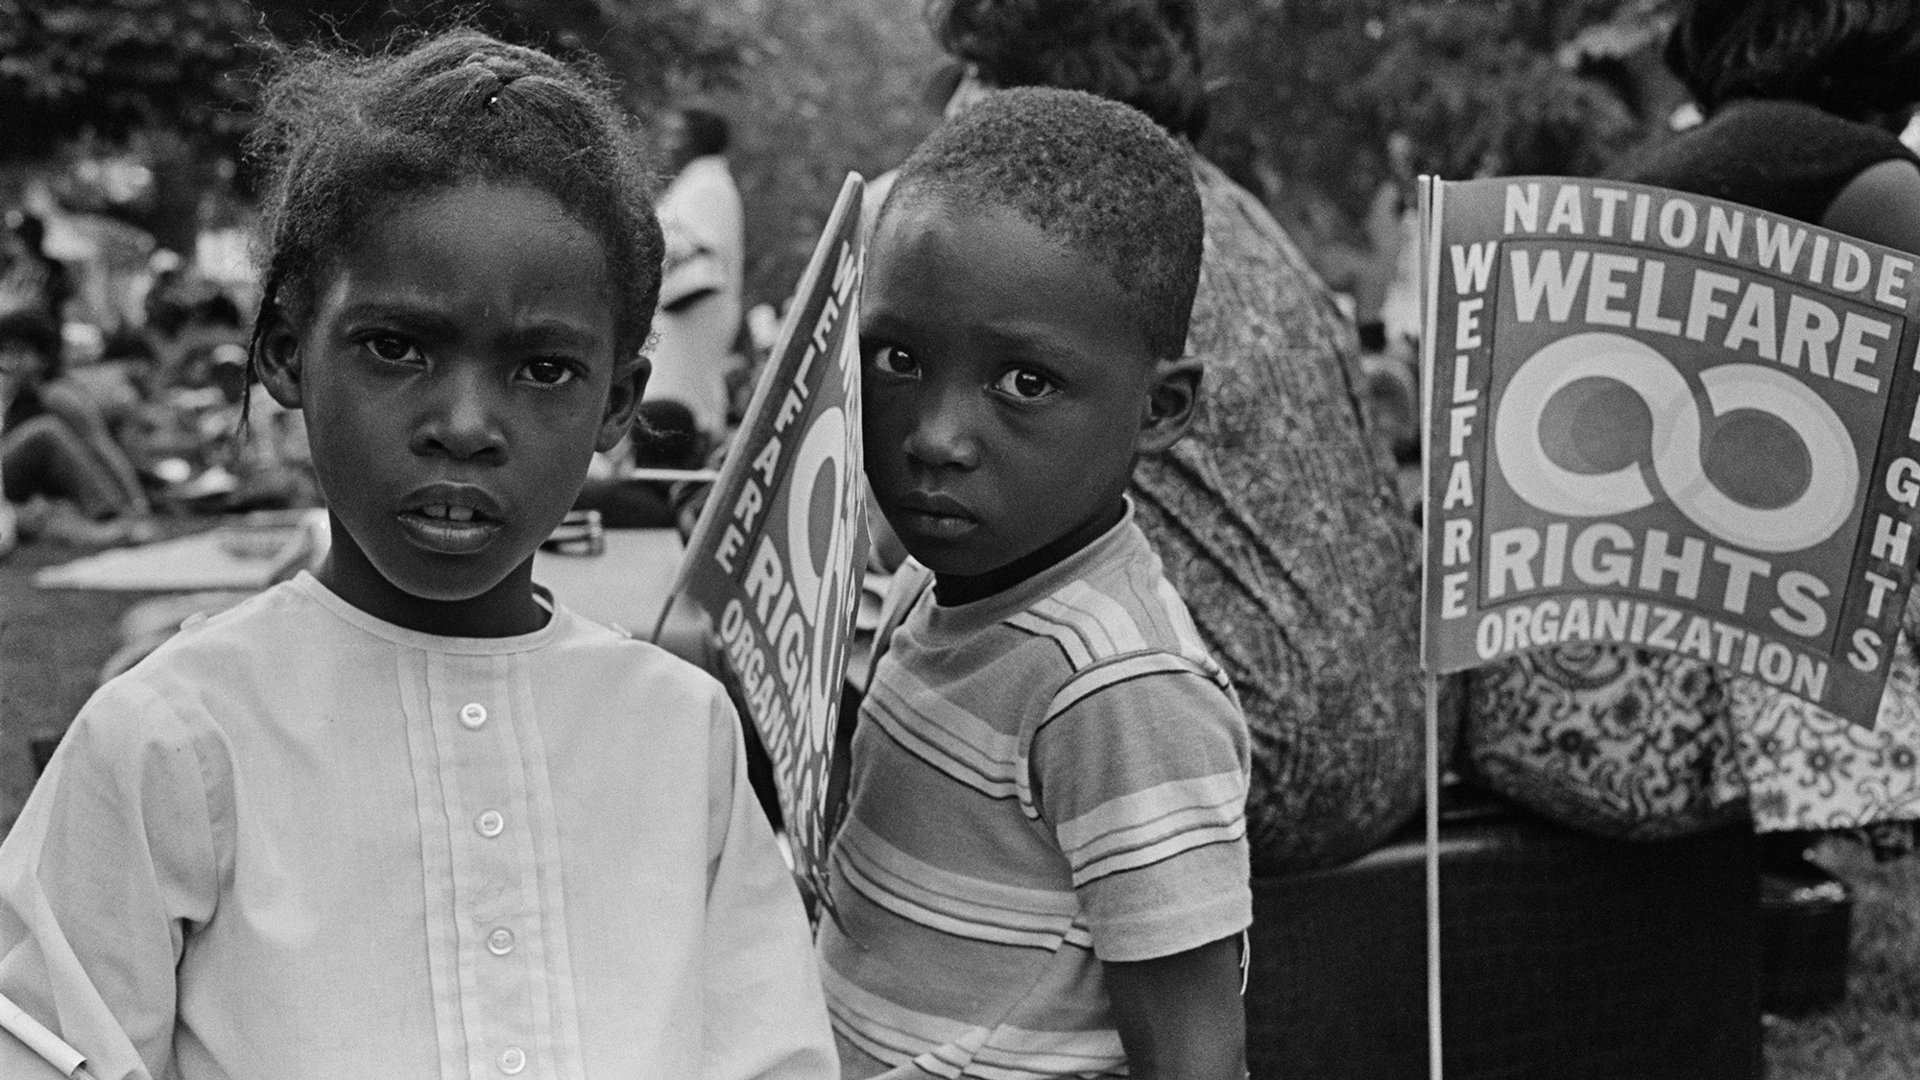 Image of: Begging Americans Young And Old Dwell In Resurrection City Made Of Tents And Wooden Shanties During The 1968 Poor Peoples Campaign In Washington Jill Freedman The Atlantic William Barber Ii On New Poor Peoples Campaign The Atlantic